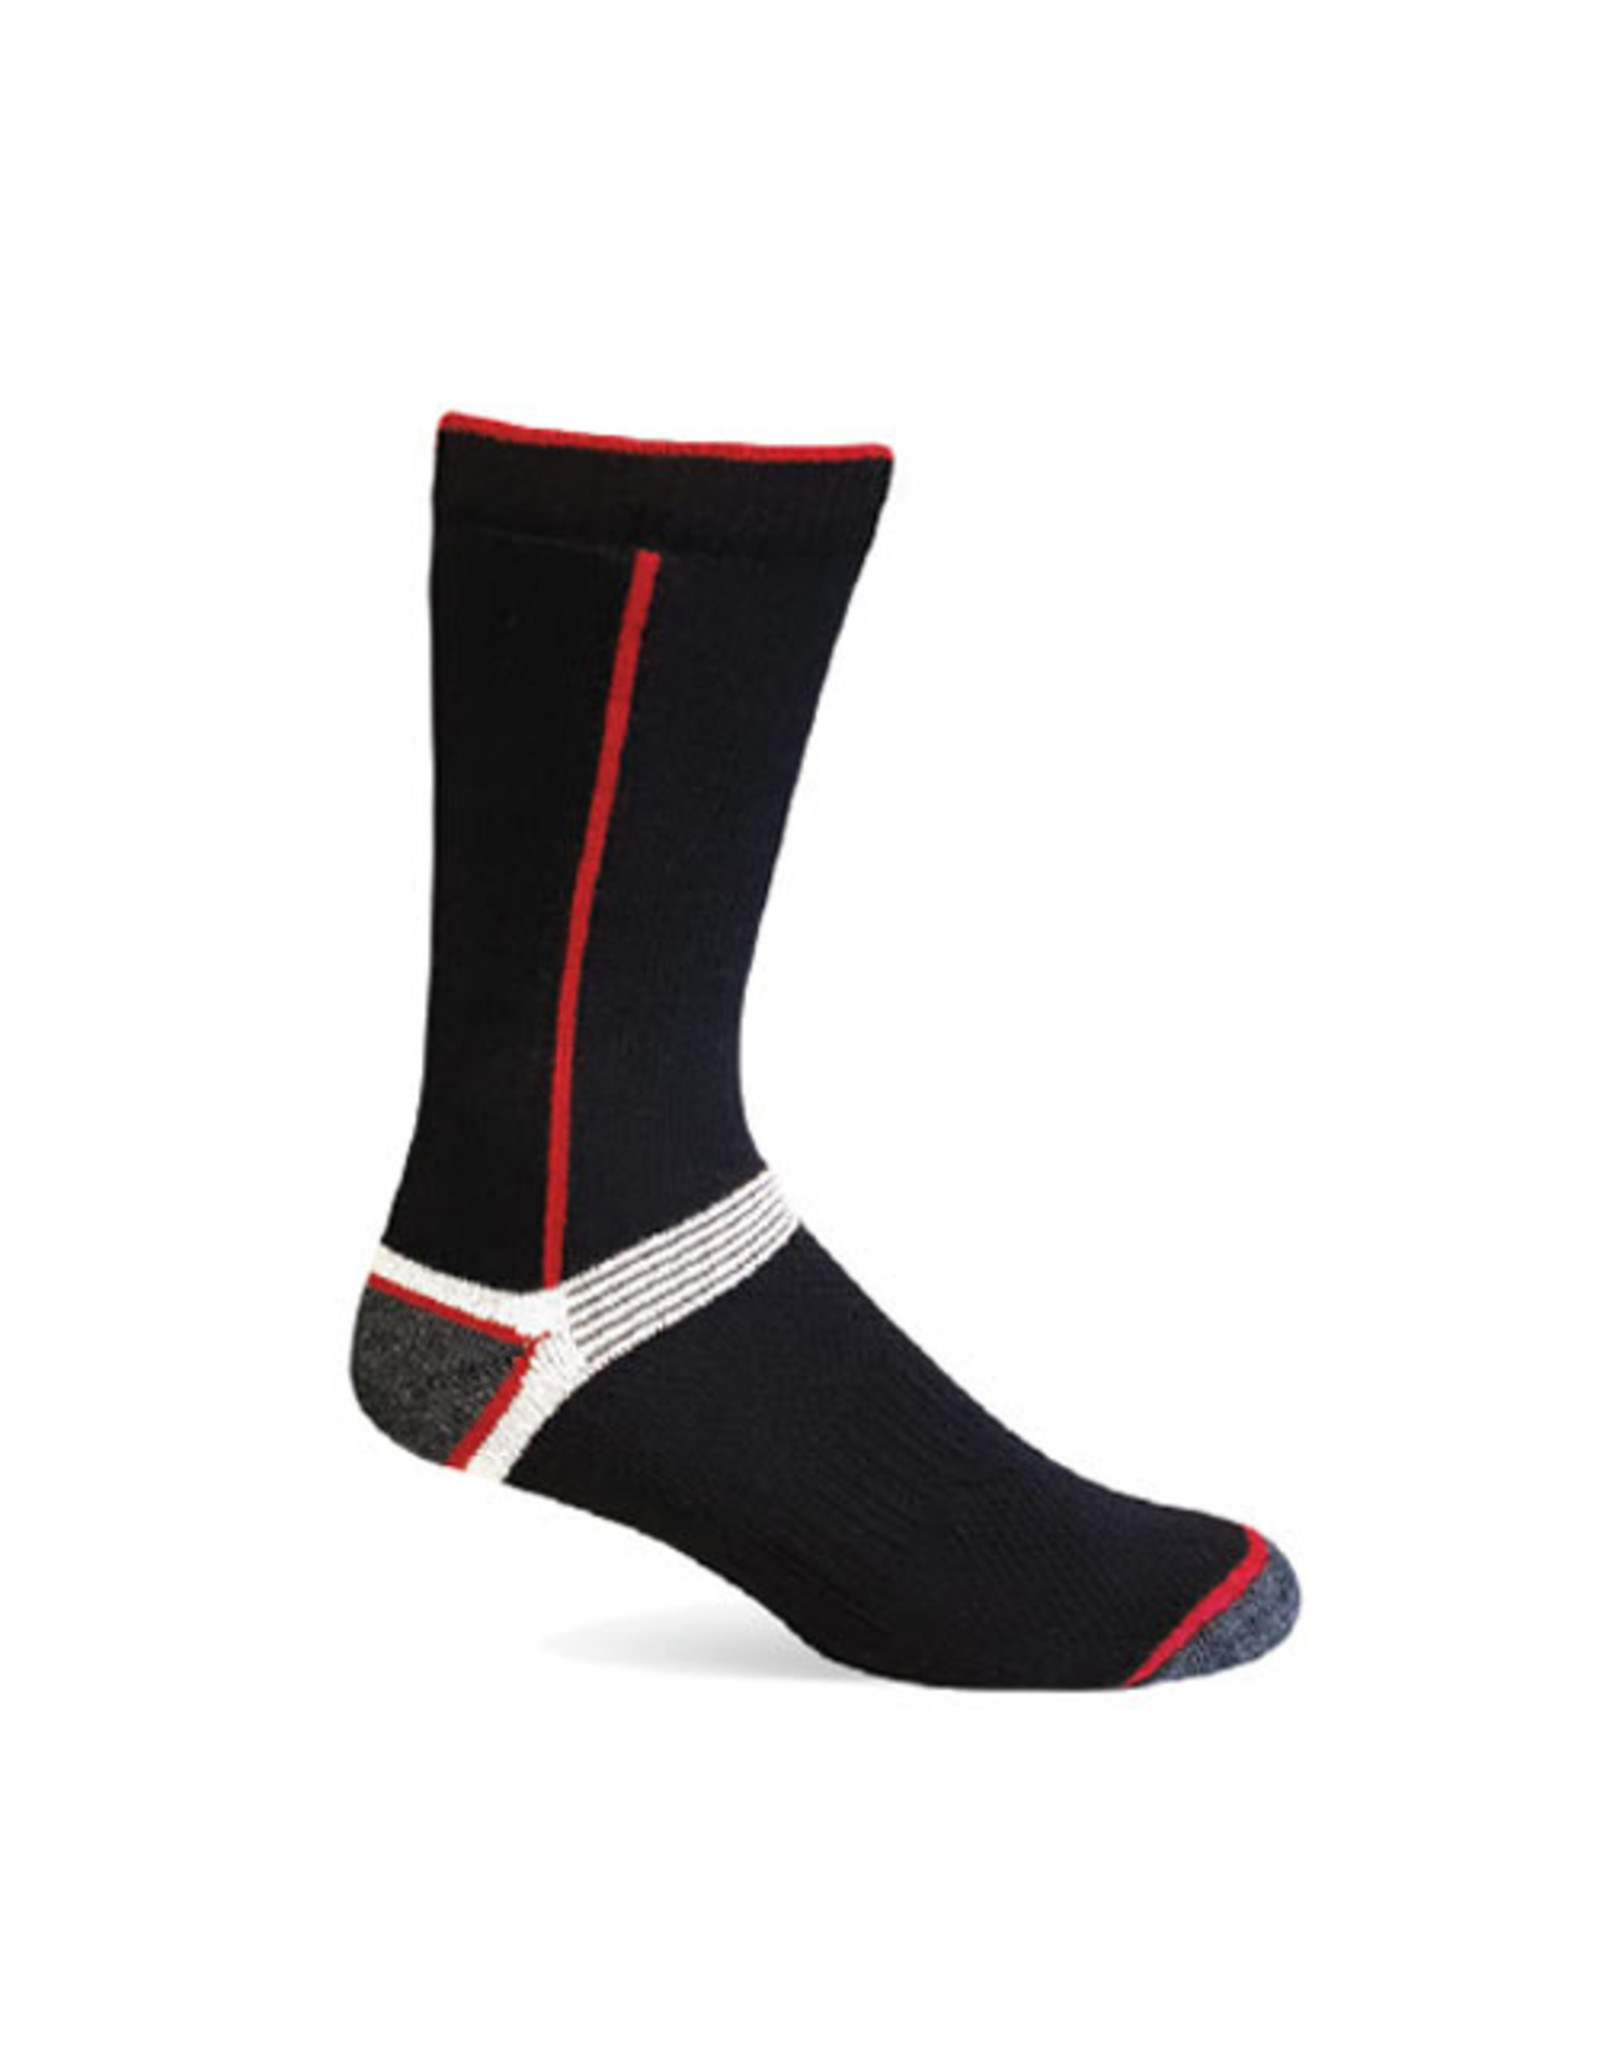 J.B. FIELDS - GREAT SOX J.B.FIELDS 8332/8932 HIKING SOCKS(75%MERINO WOOL)